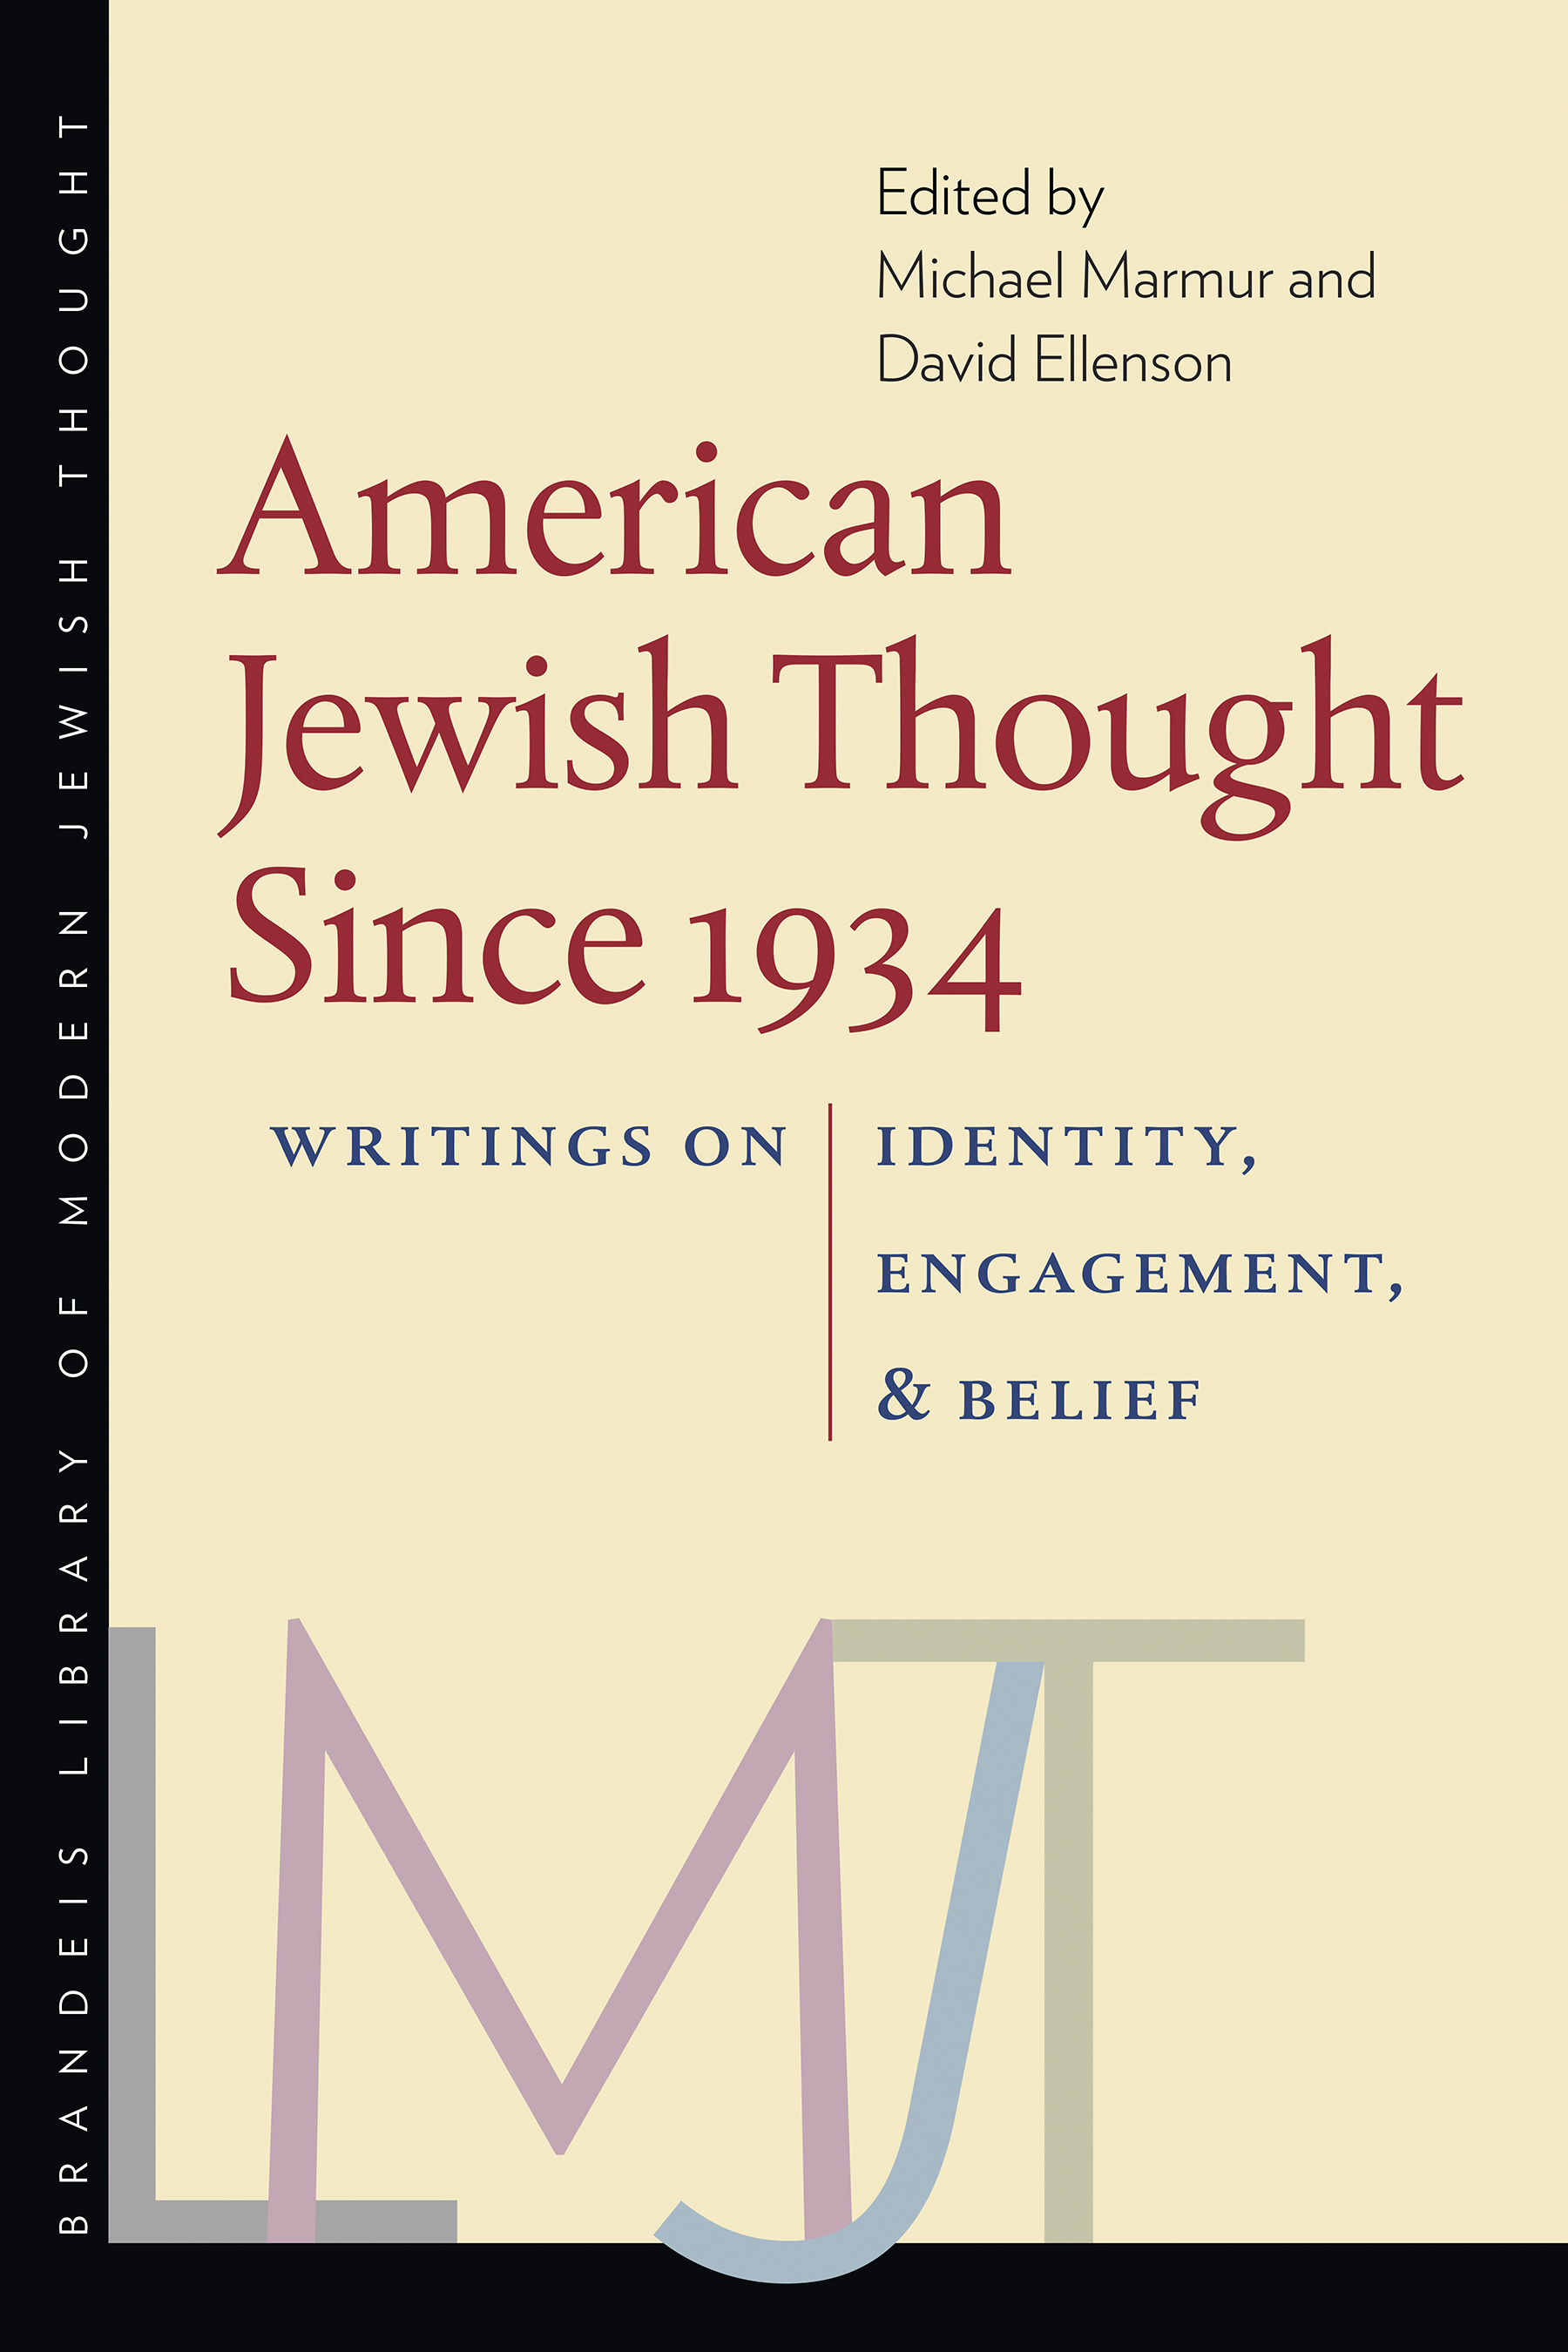 American Jewish Thought Since 1934: Writings on Identity, Engagement, and Belief